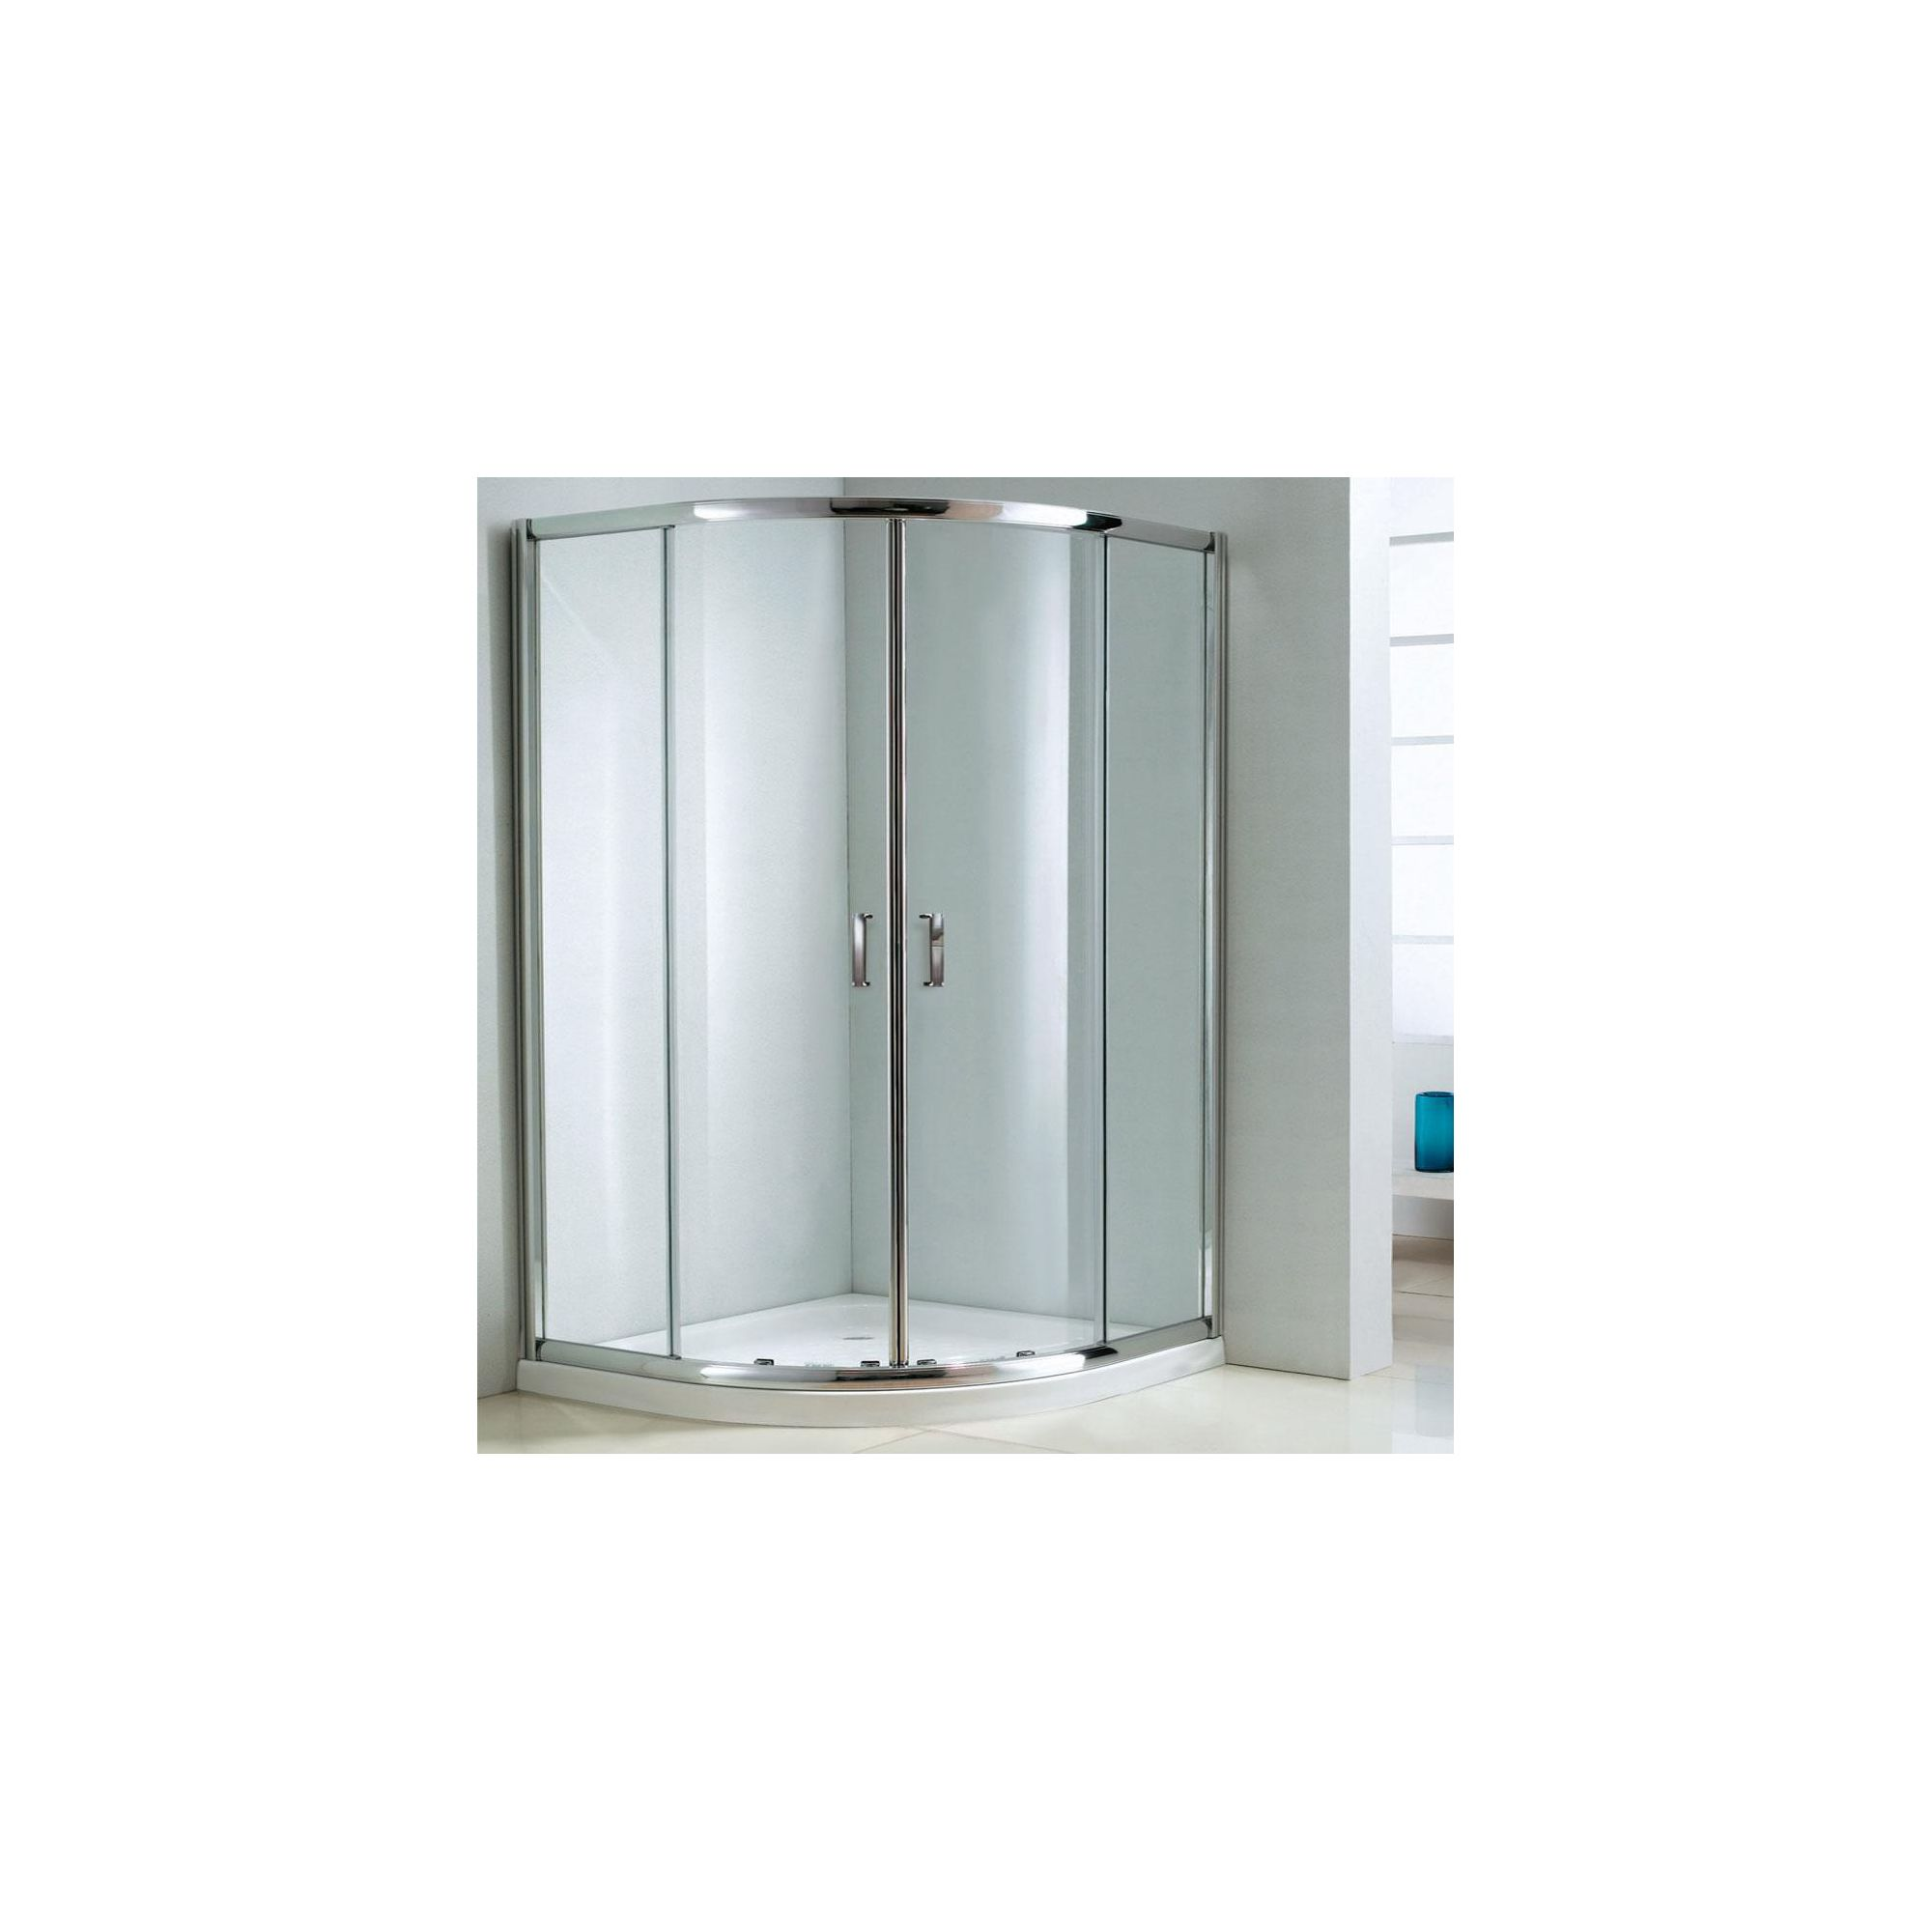 Duchy Style Double Quadrant Shower Door, 1000mm x 1000mm, 6mm Glass at Tesco Direct